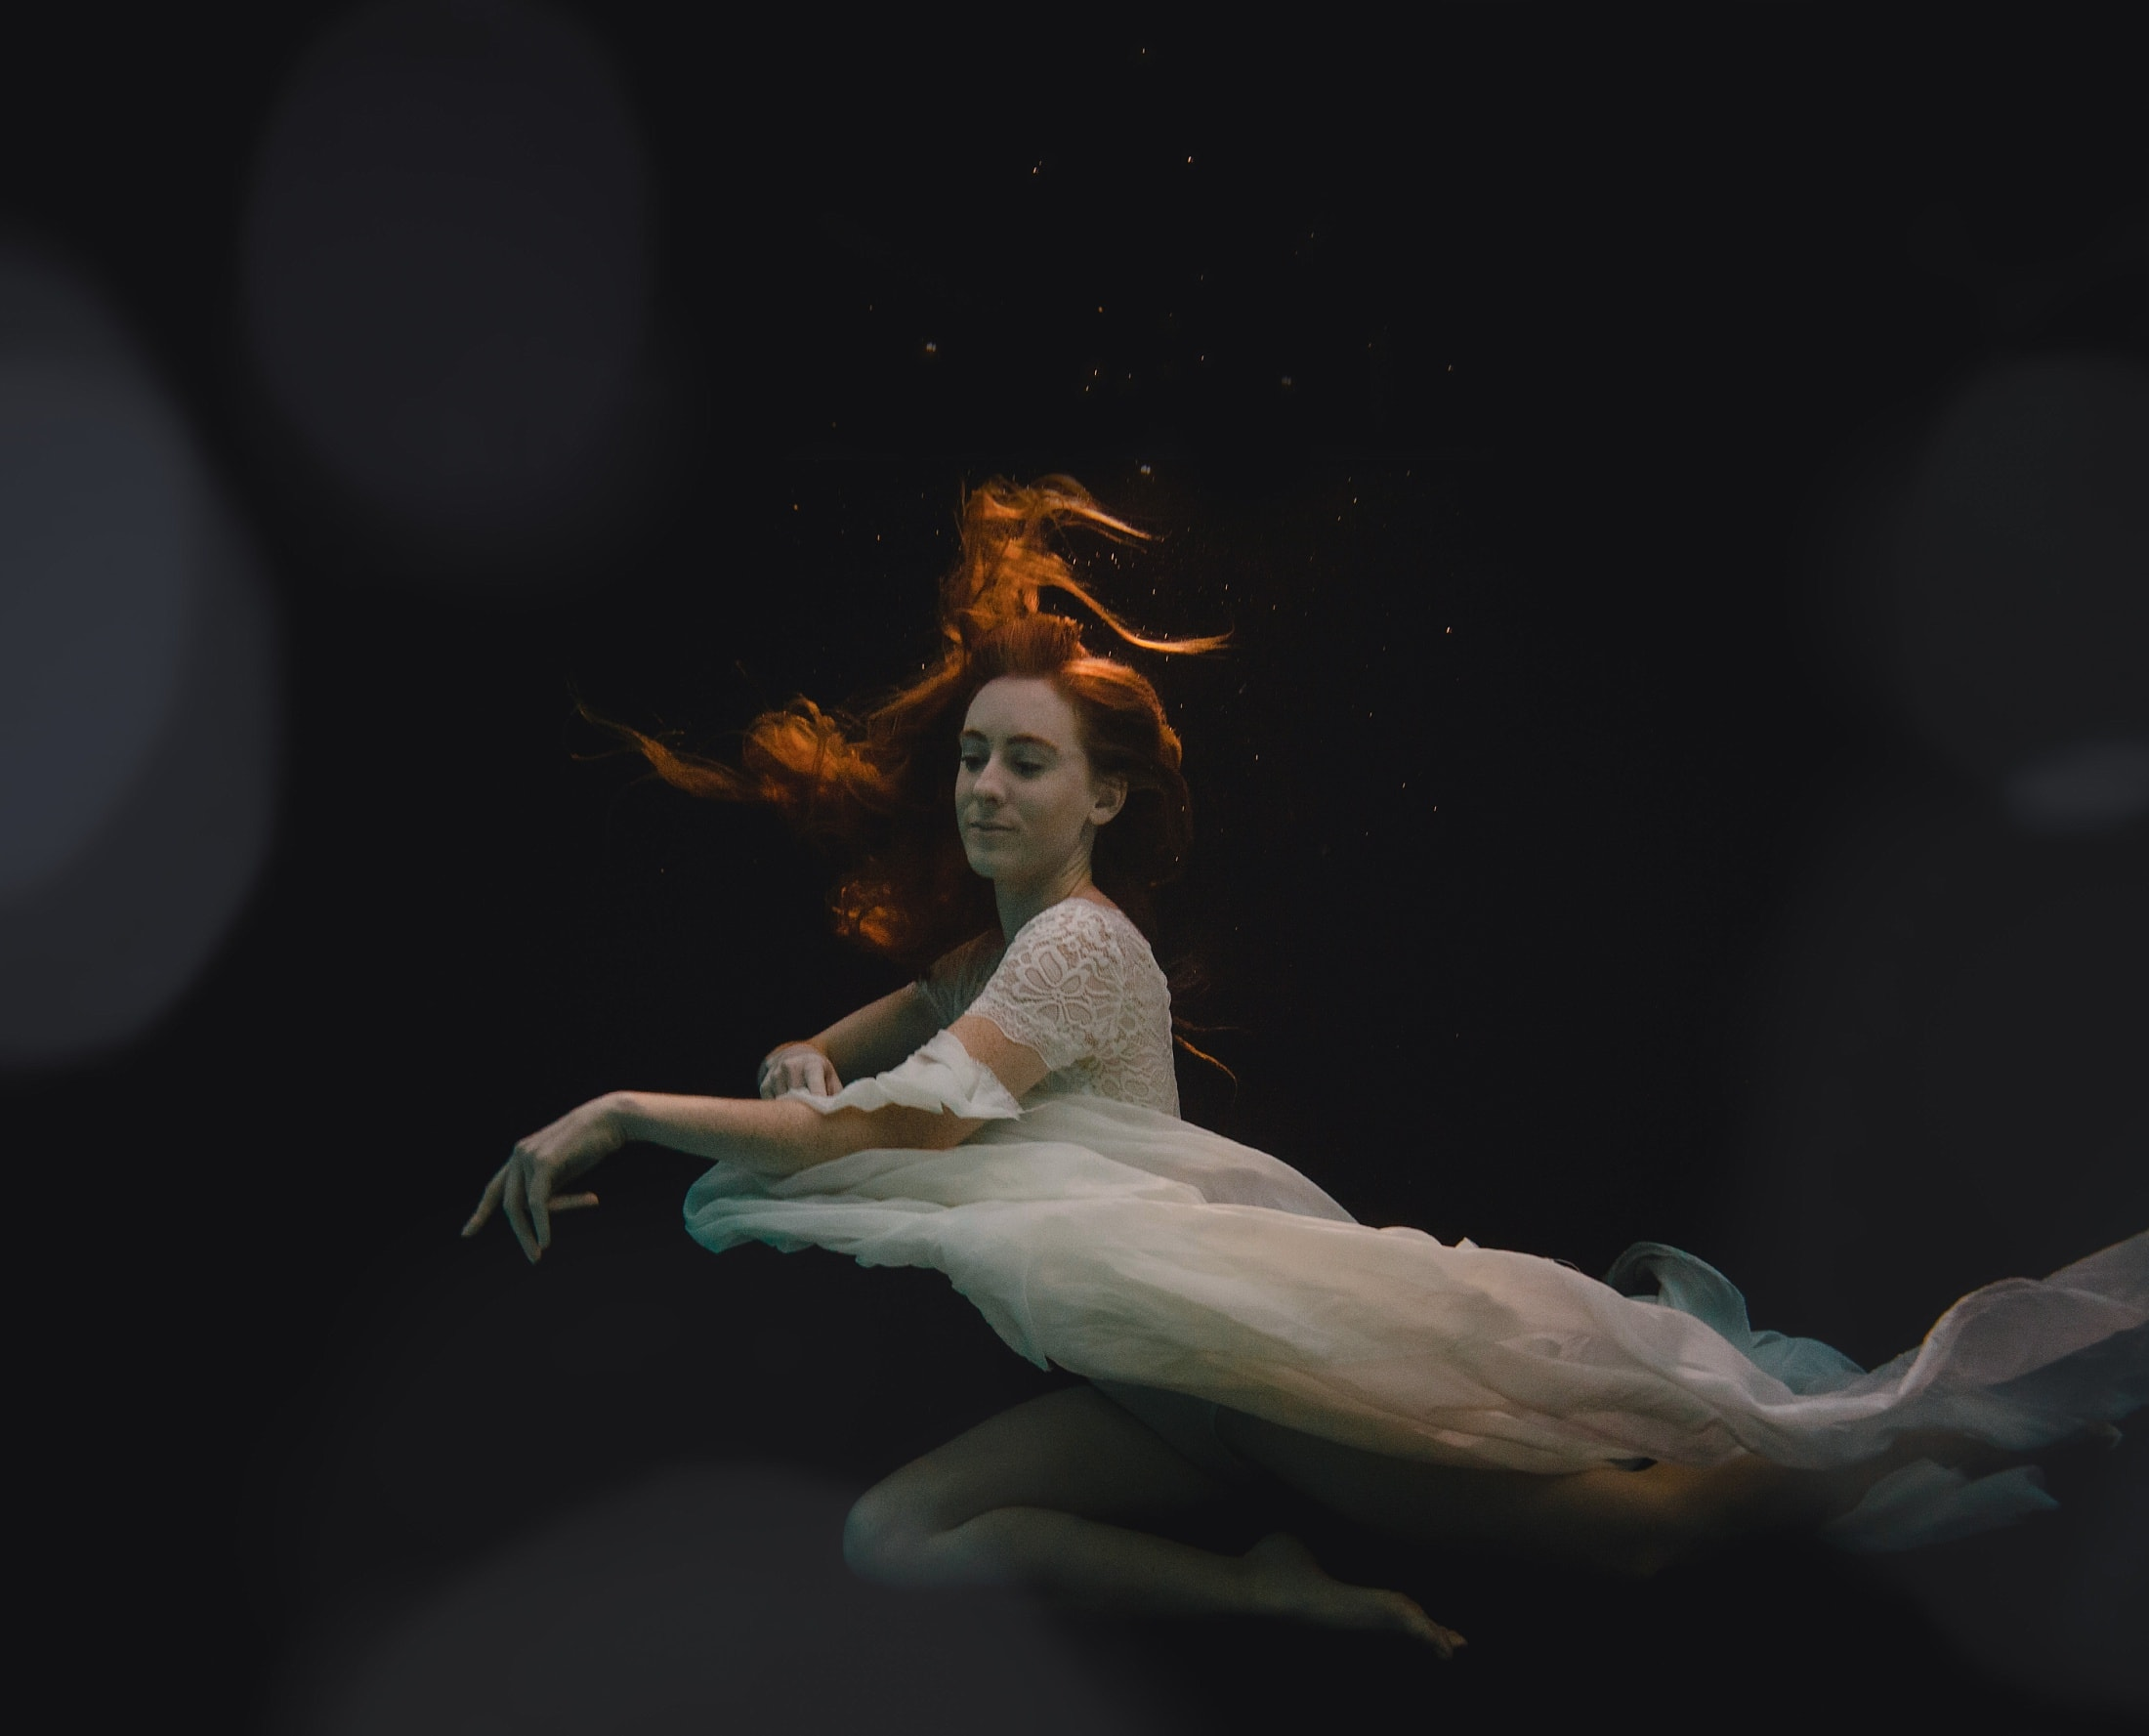 underwater dancer portraits in a pool